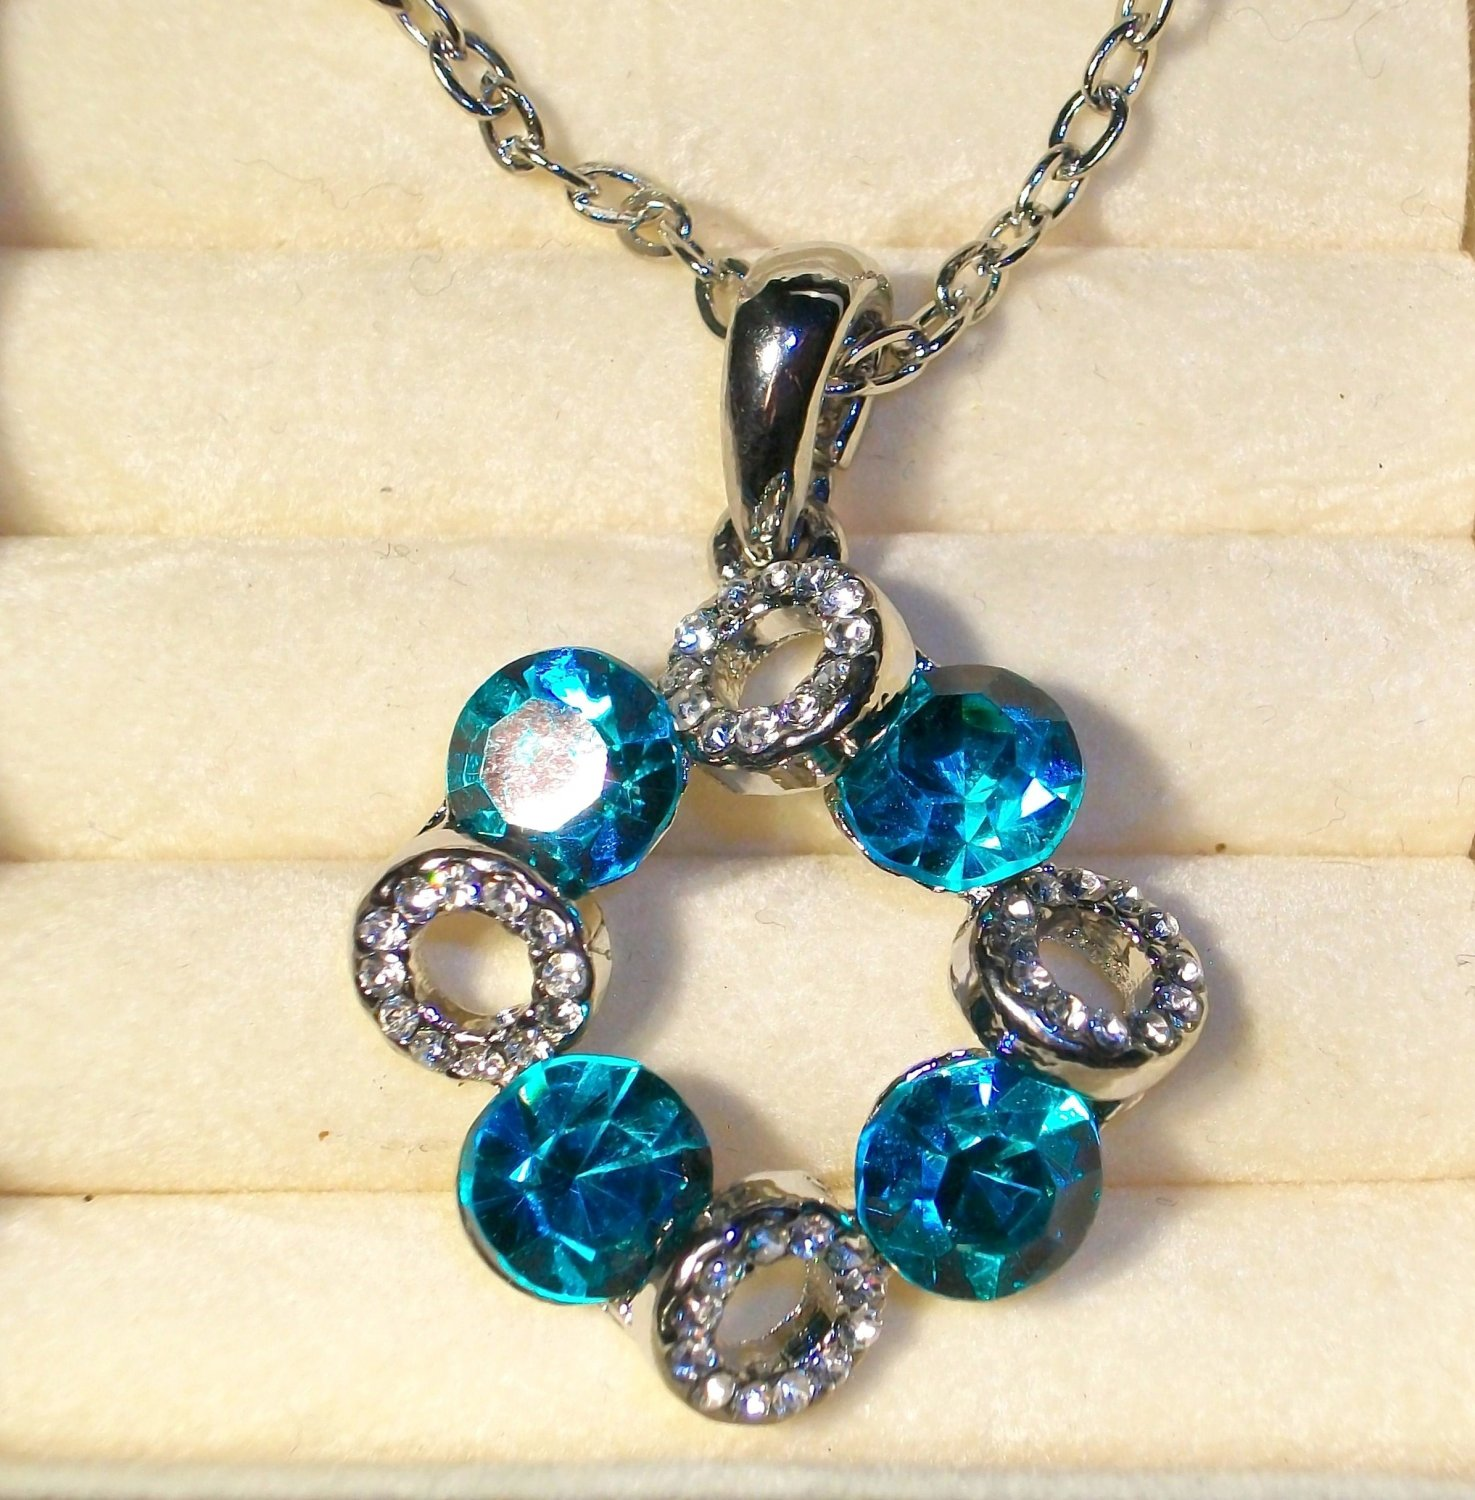 Fashion Pendant + Chain-Silver Tone- Turquoise and Clear Glass Stones